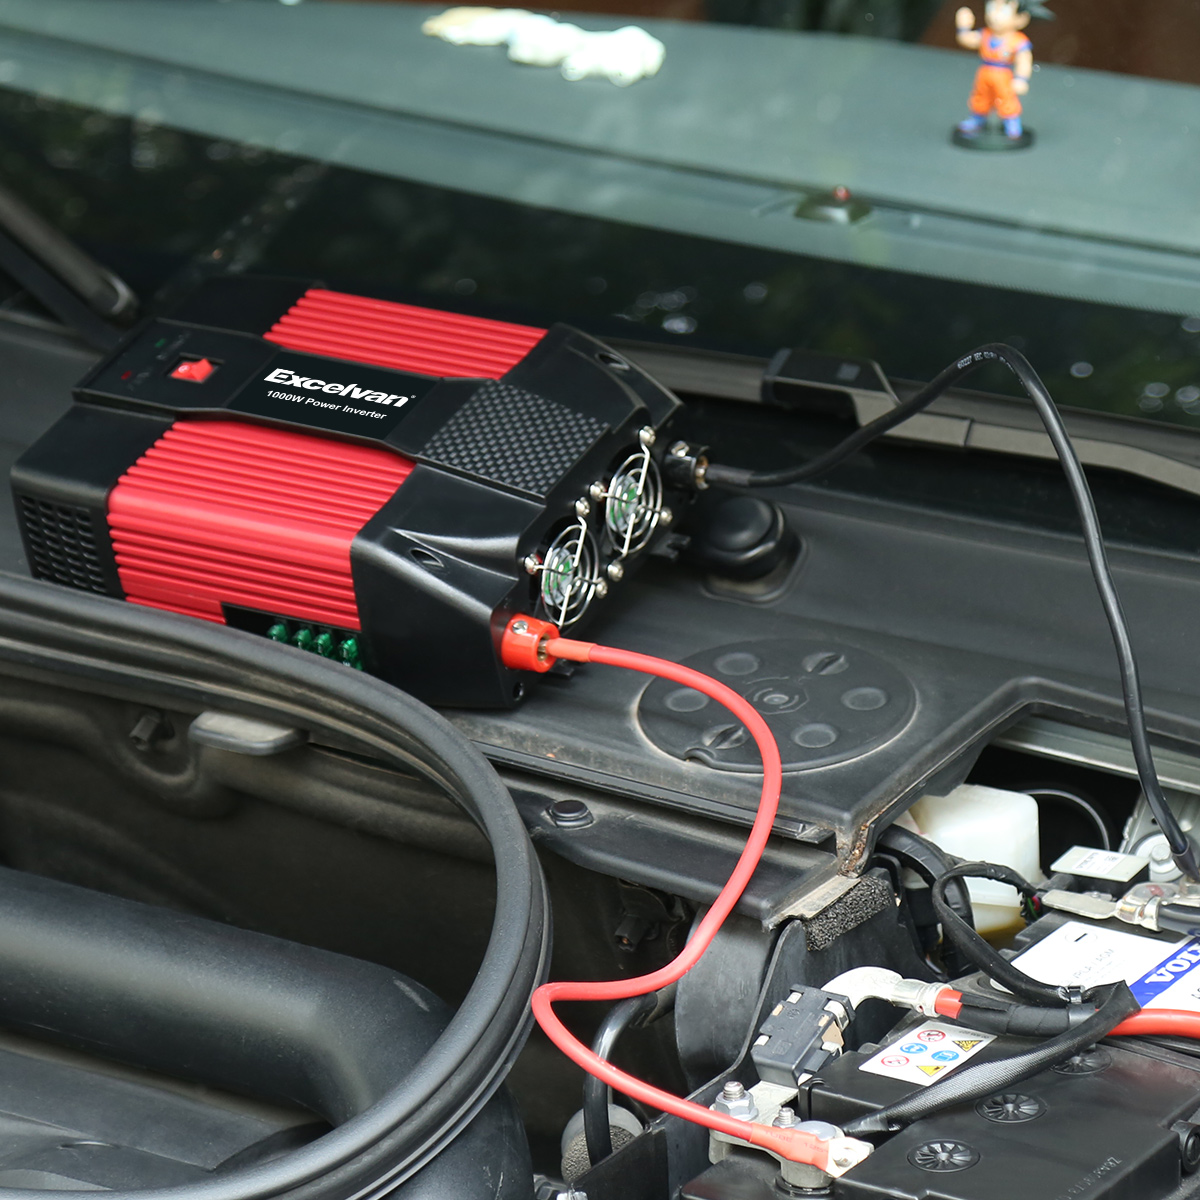 Excelvan 1000w Car Power Inverter 12v Dc To 110v Ac With Dual Usb Port And 3 Outlet